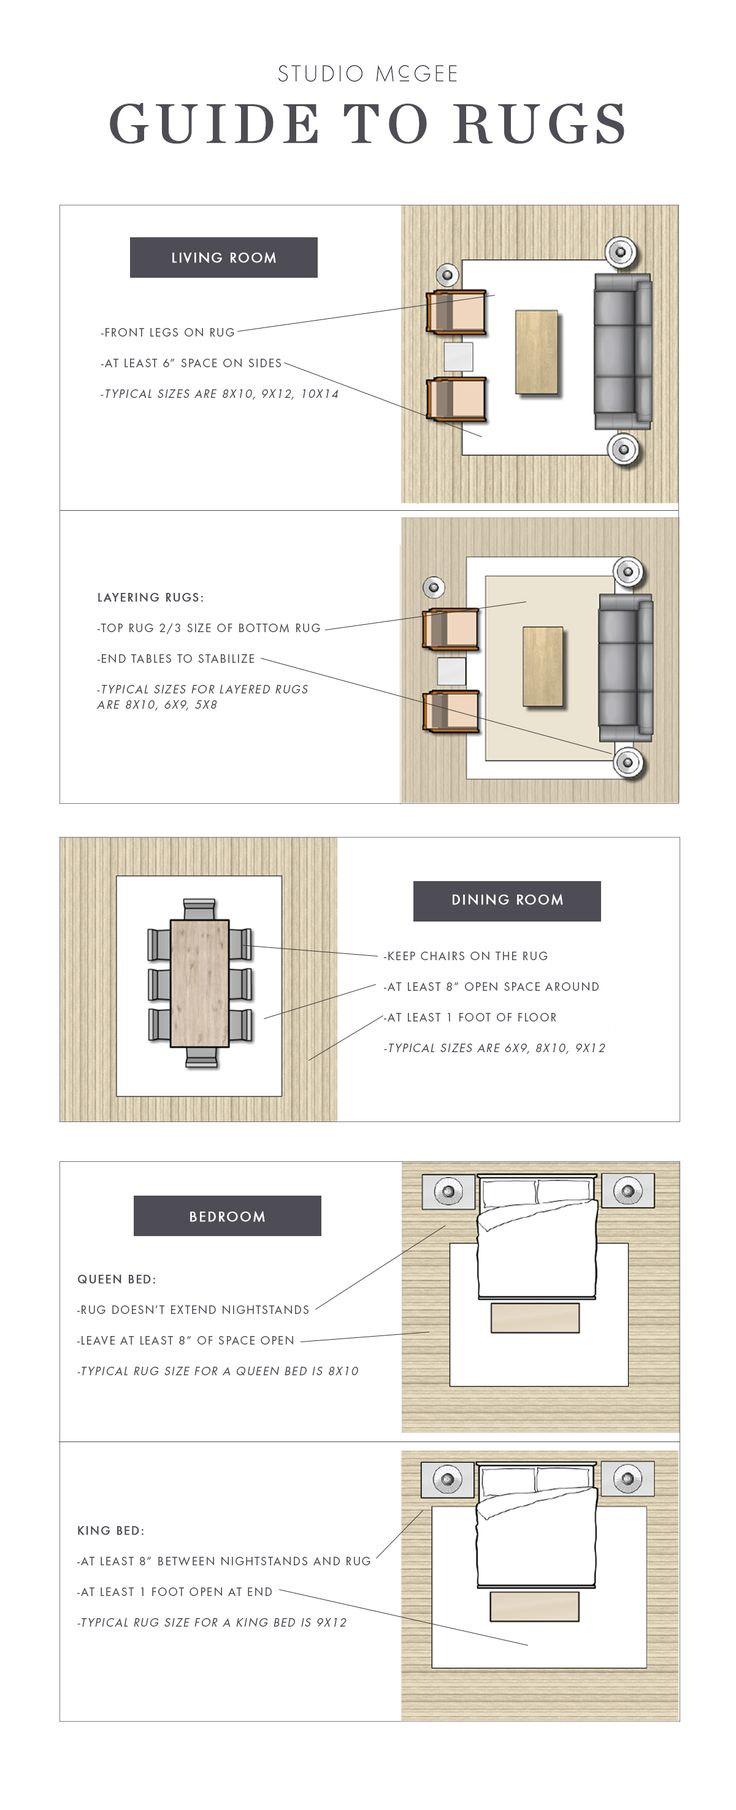 Rug Guide - Studio McGee Blog